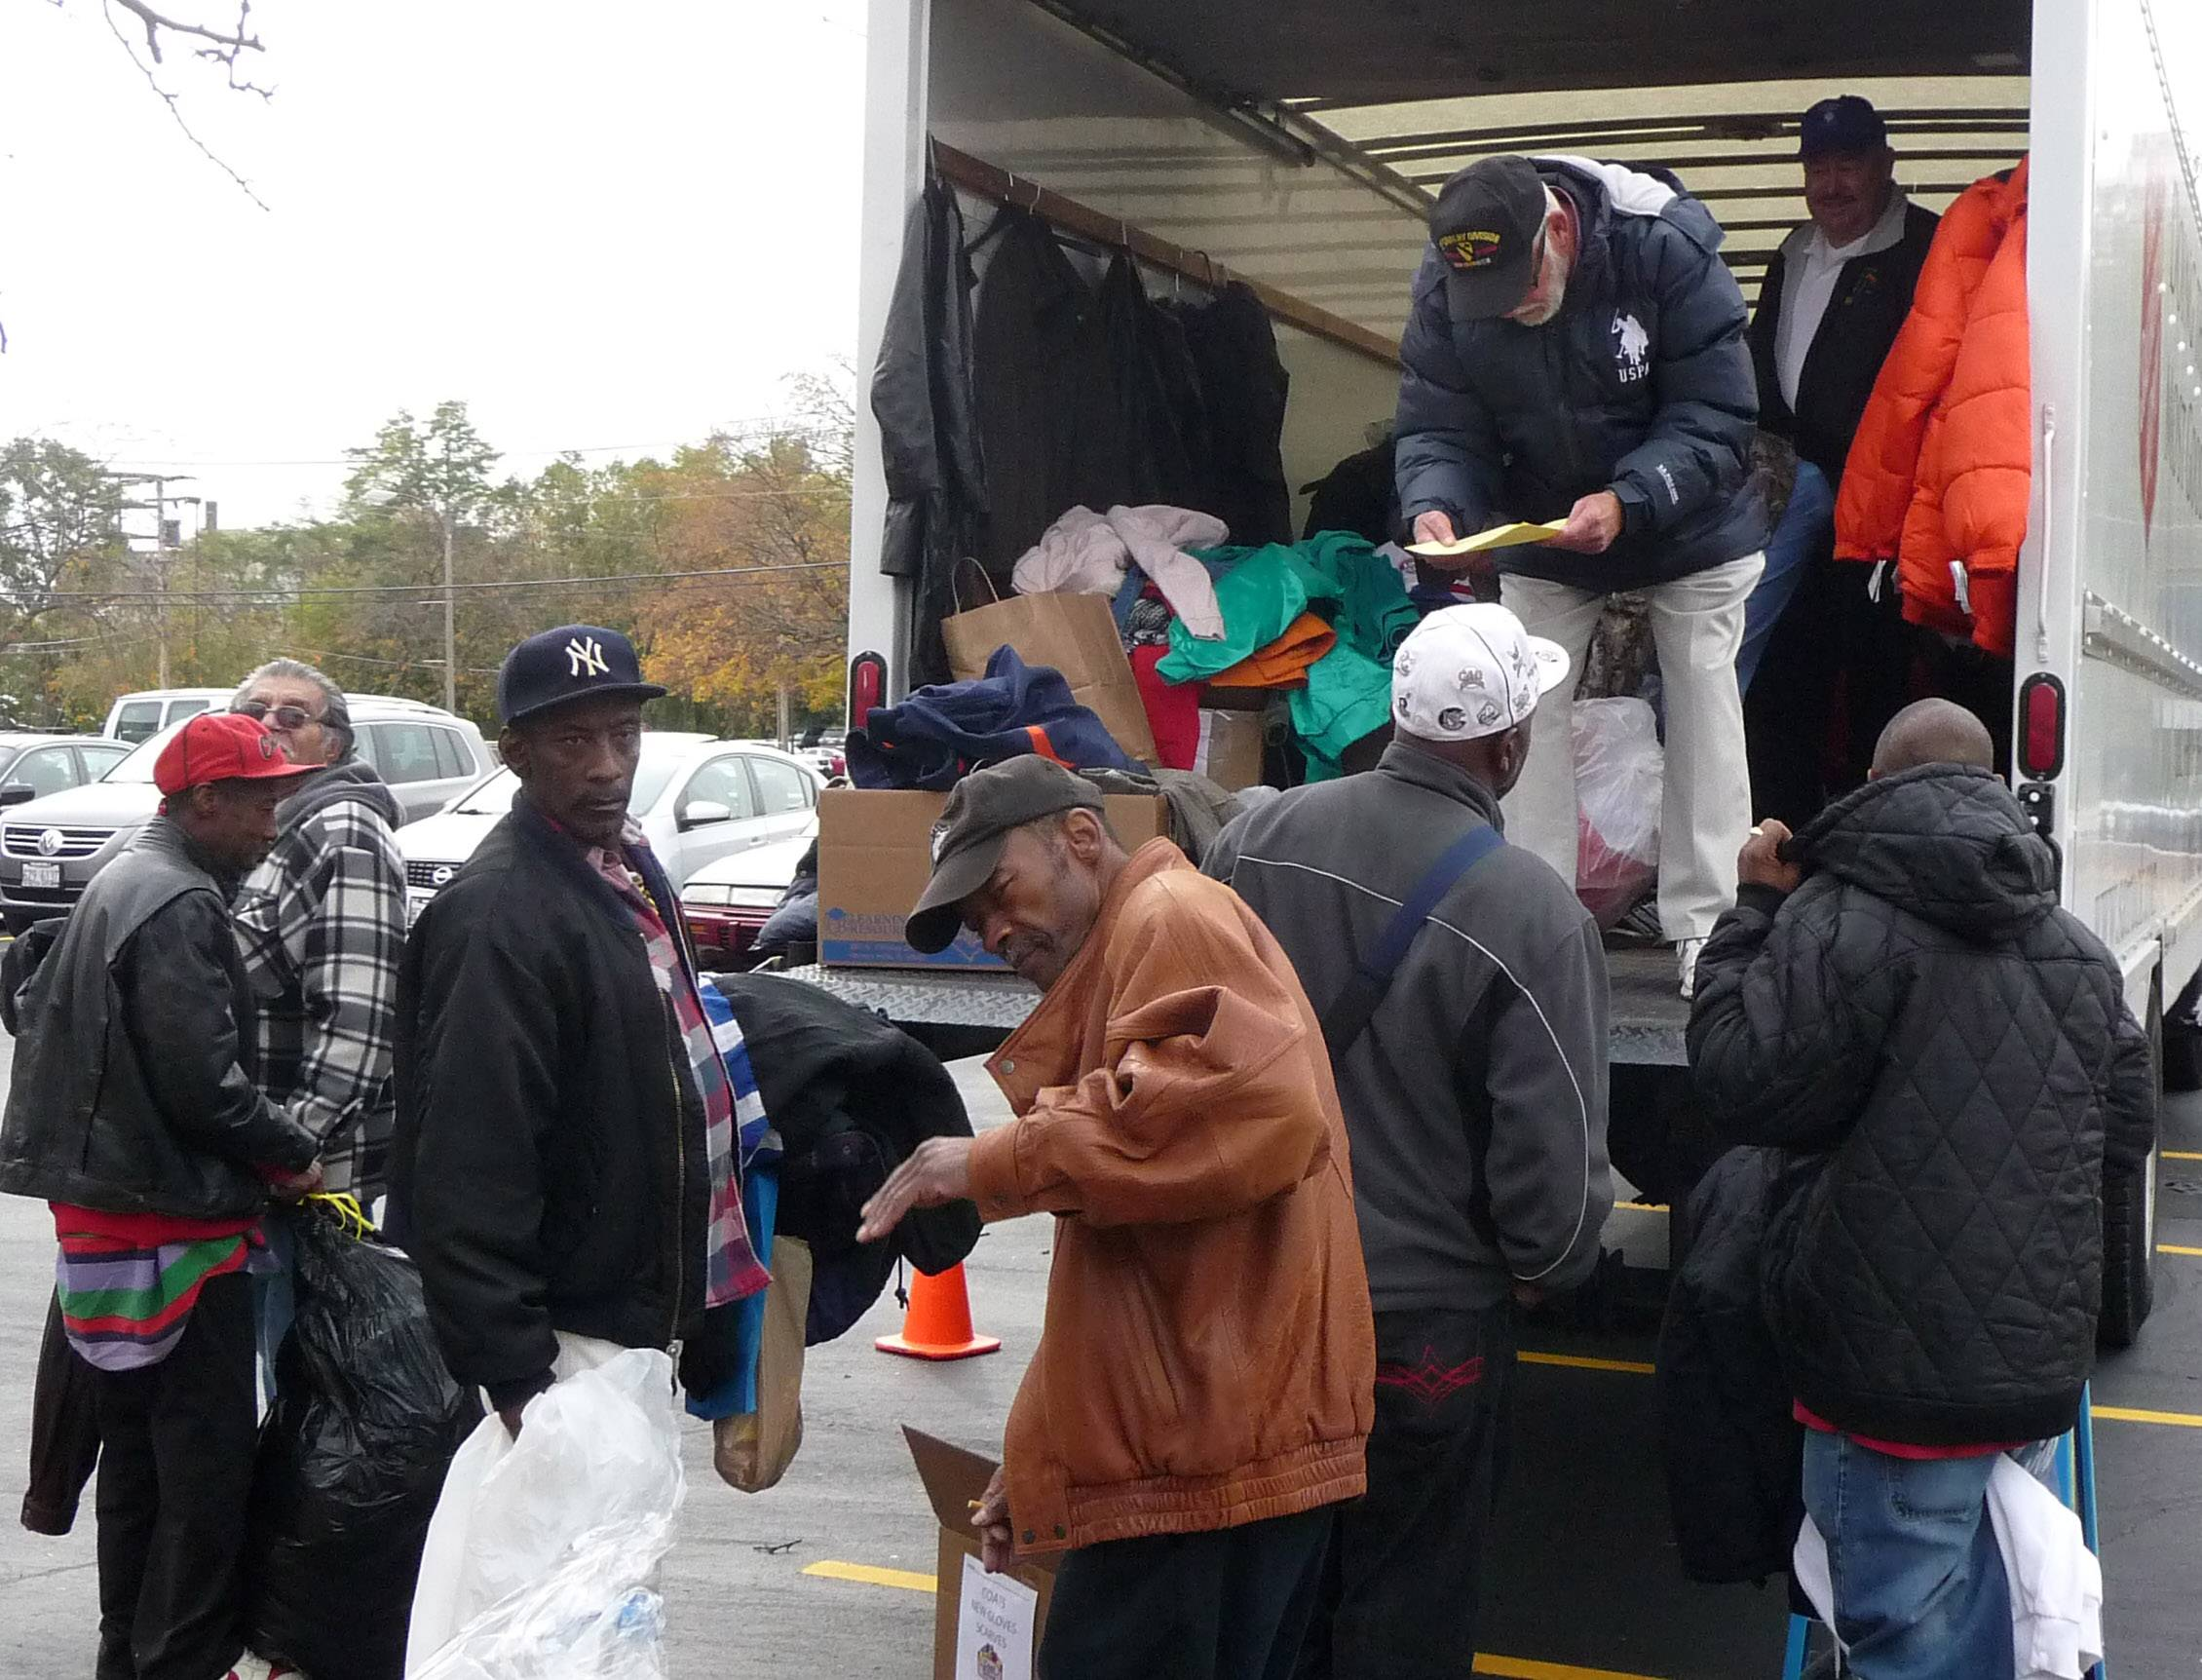 Veterans receive winter coats as part of the Stand Down organized by the Veterans's Assistance Commission of Lake County. High school football fans this year again are being asked to contribute.